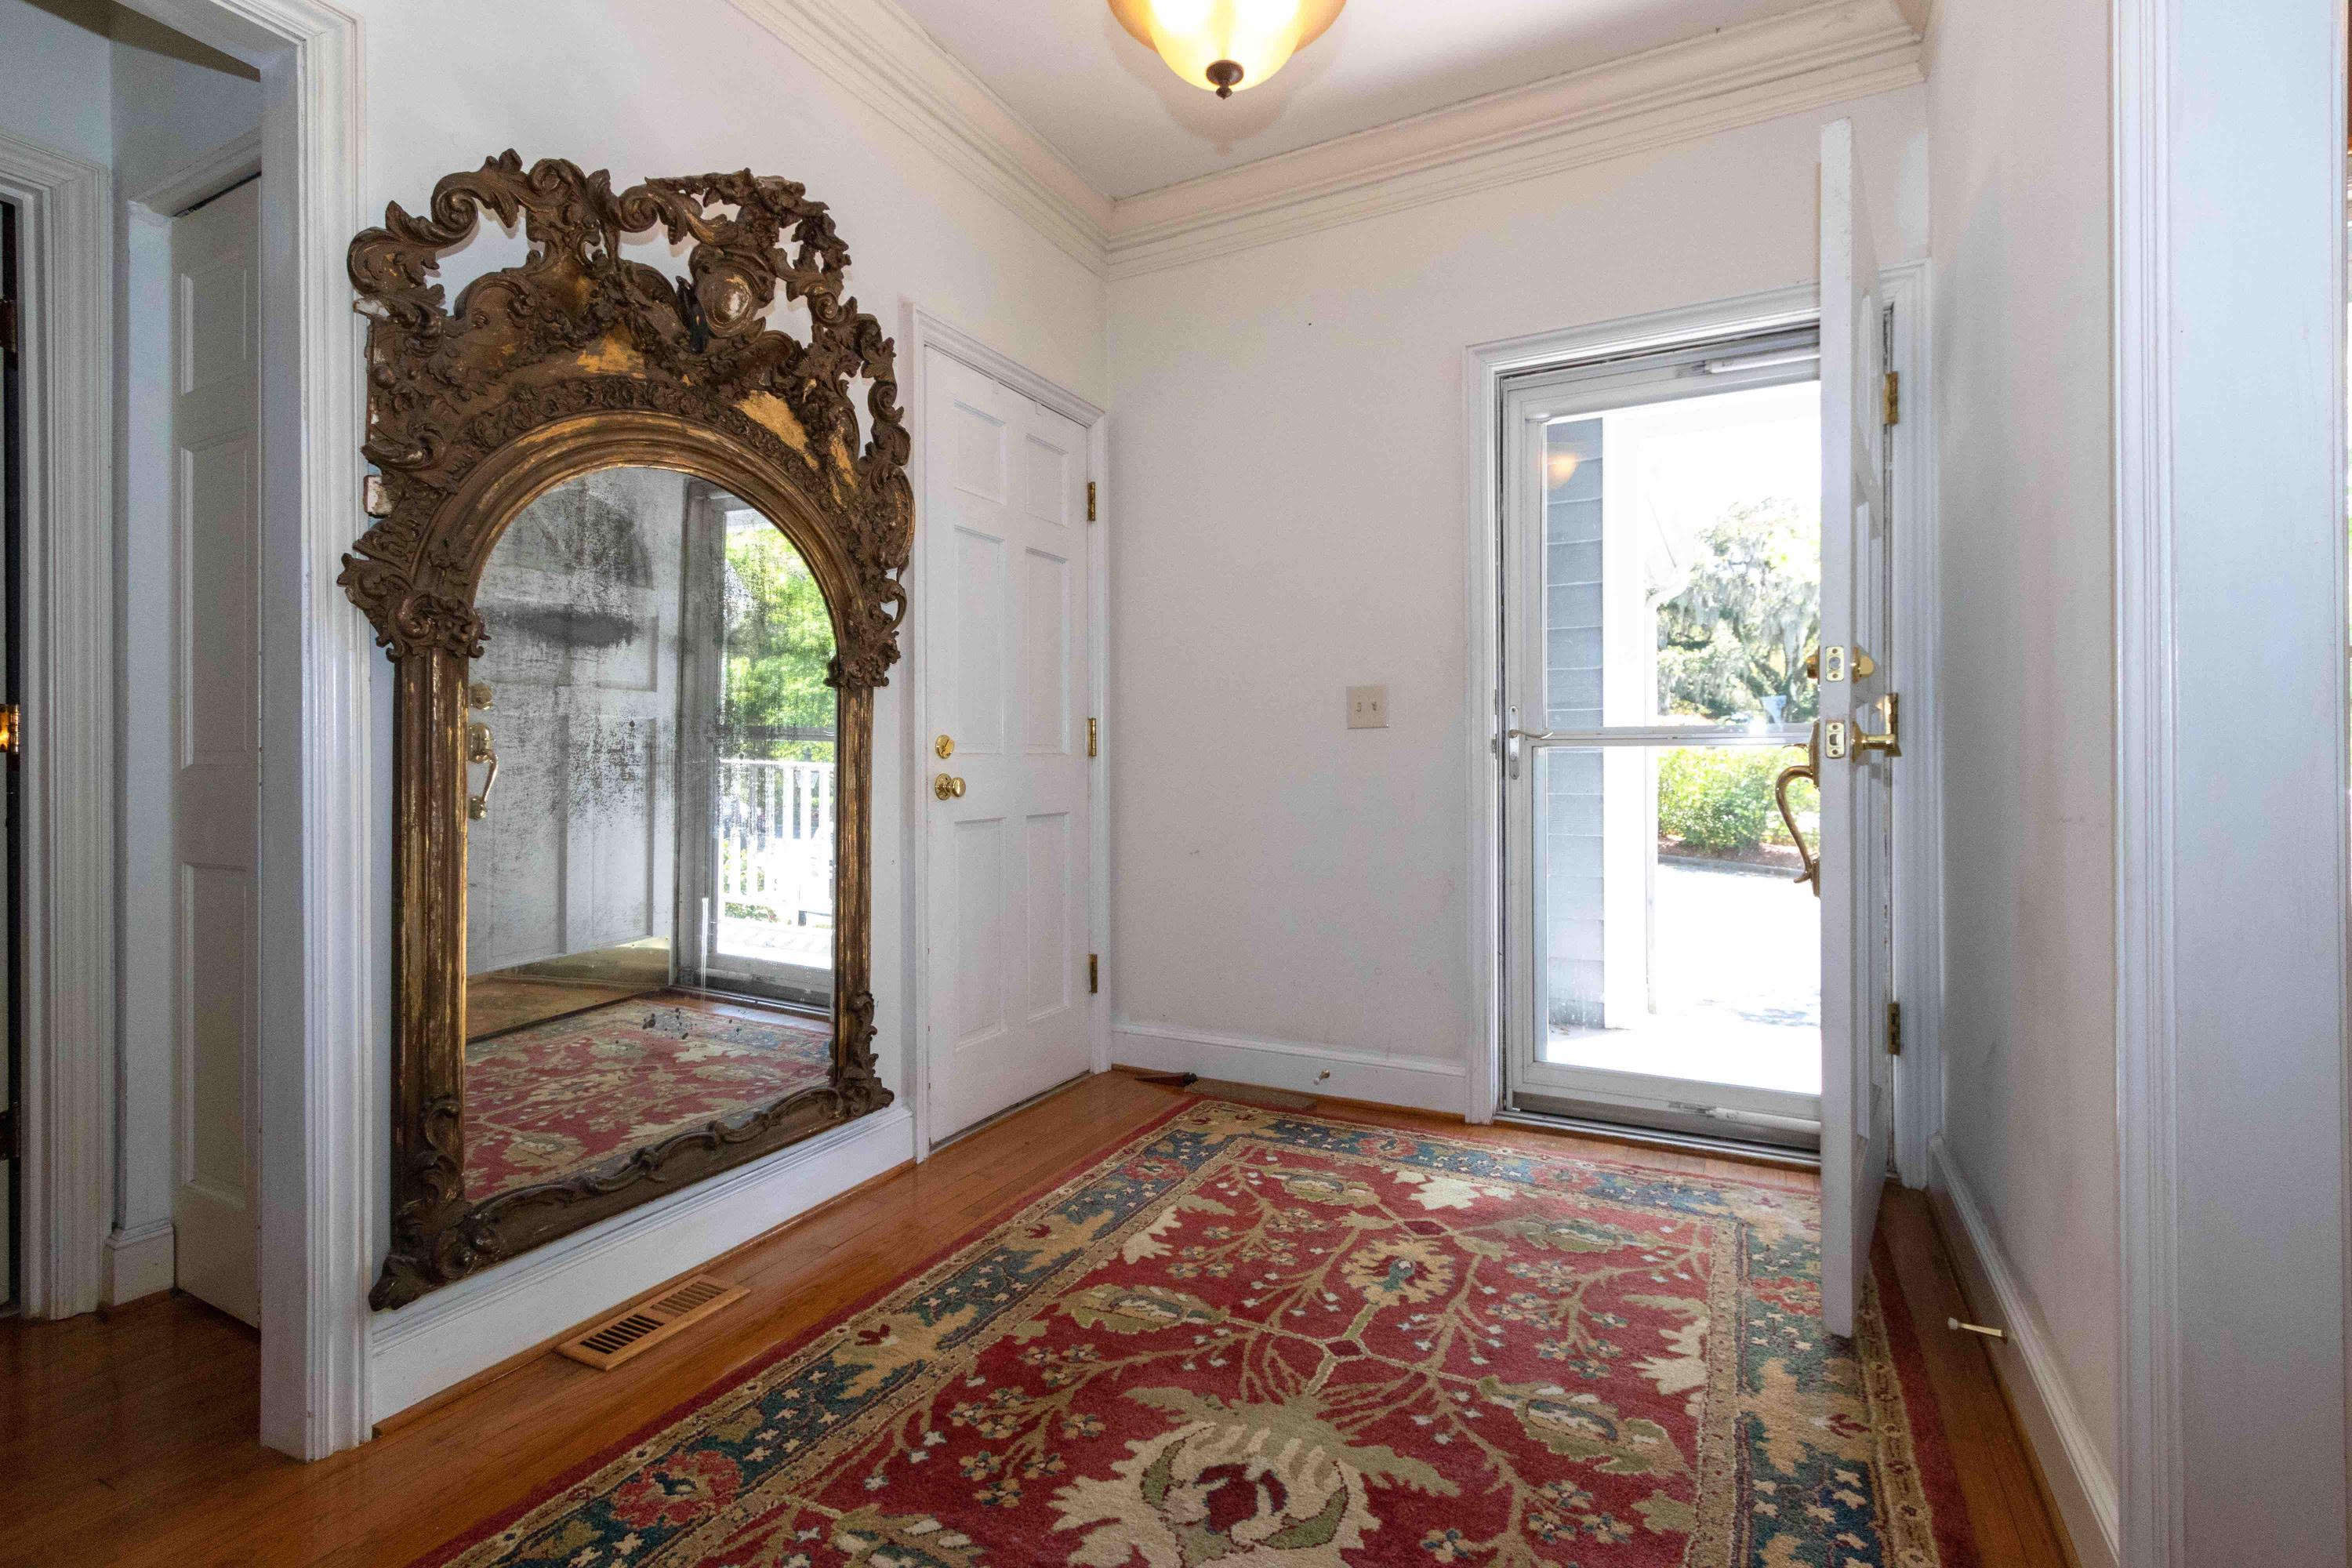 Waterfront Plantation Homes For Sale - 107 Waterfront Plantation, Charleston, SC - 0